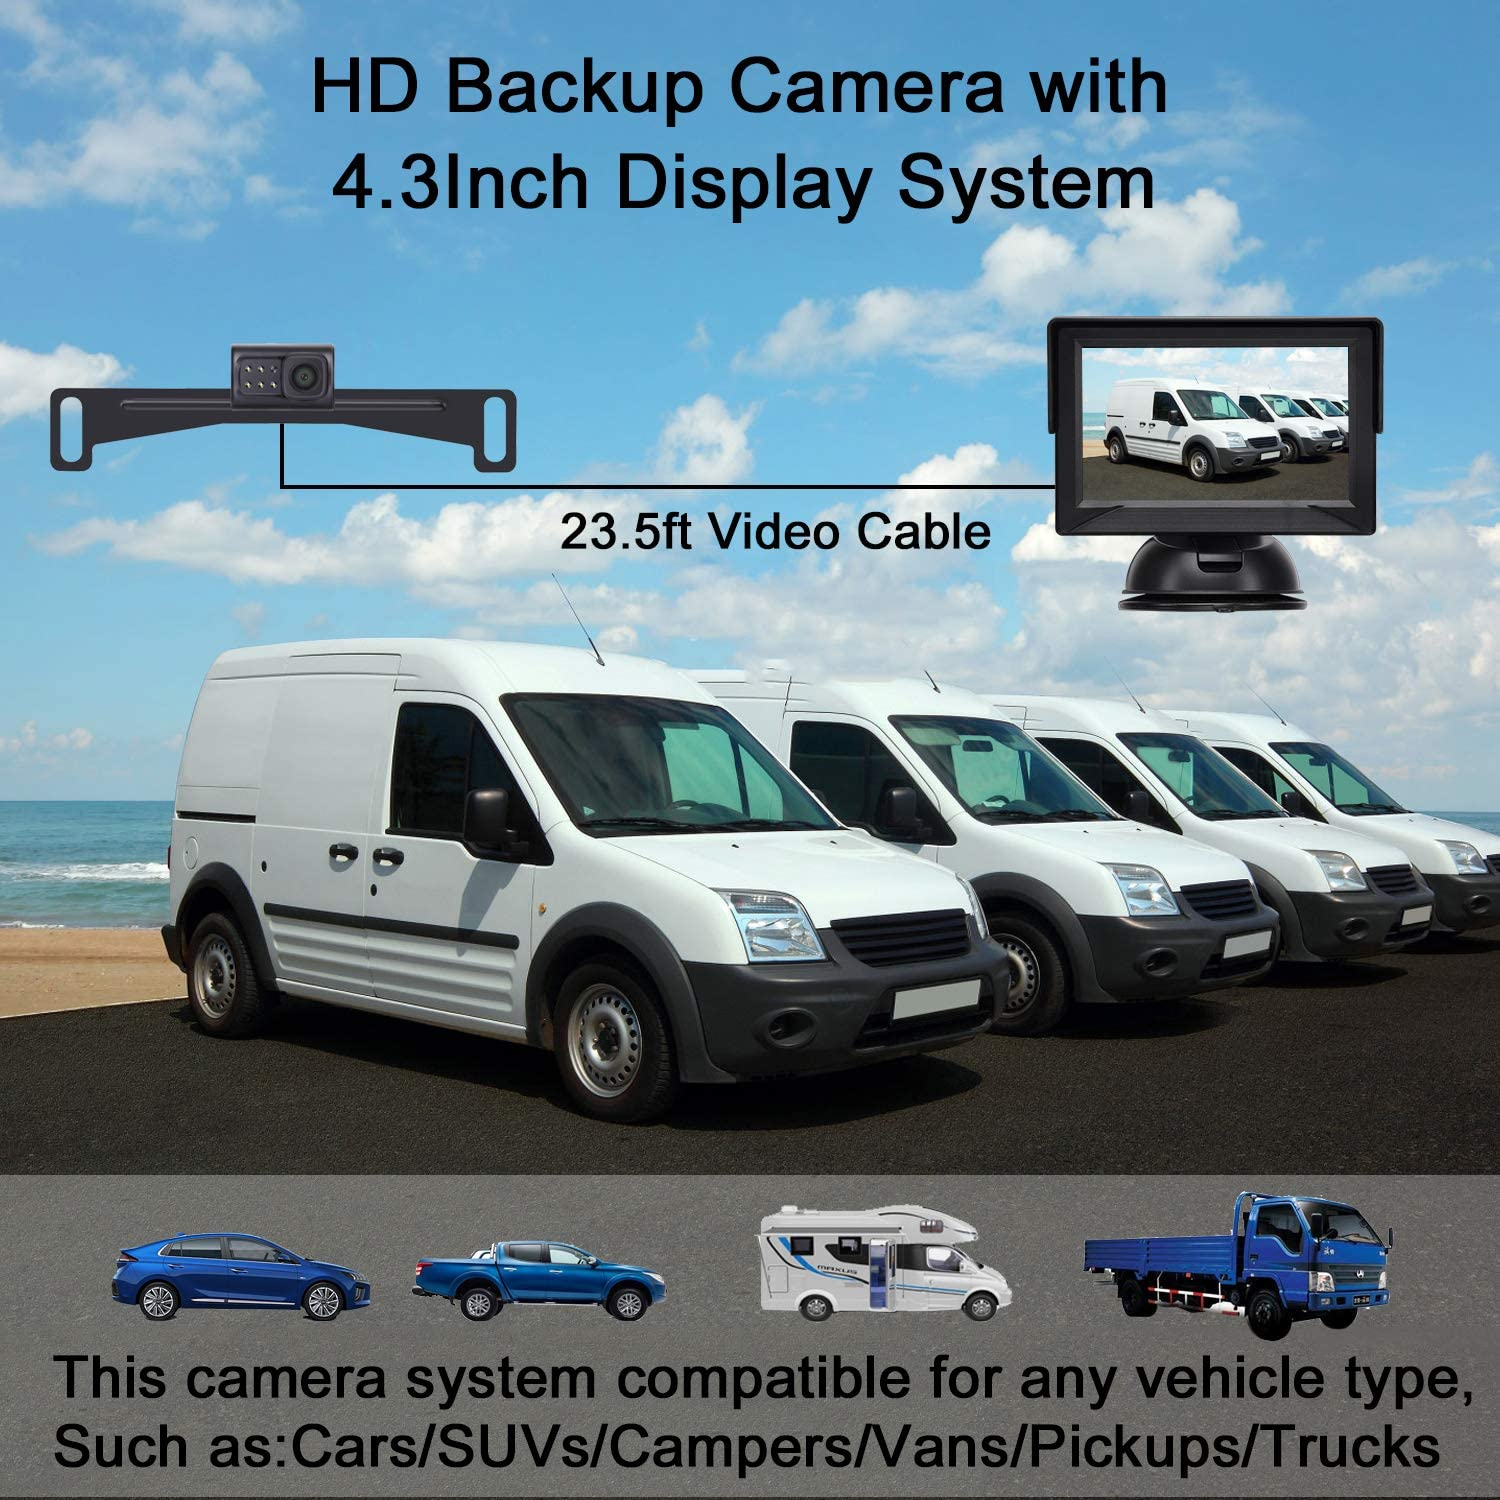 LeeKooLuu Backup Camera with 4.3 Monitor High-Speed Observation System Super Night Vision HD Color Rear//Front View for Cars//Pickups//Trucks//RVs//Vans Easy Installation